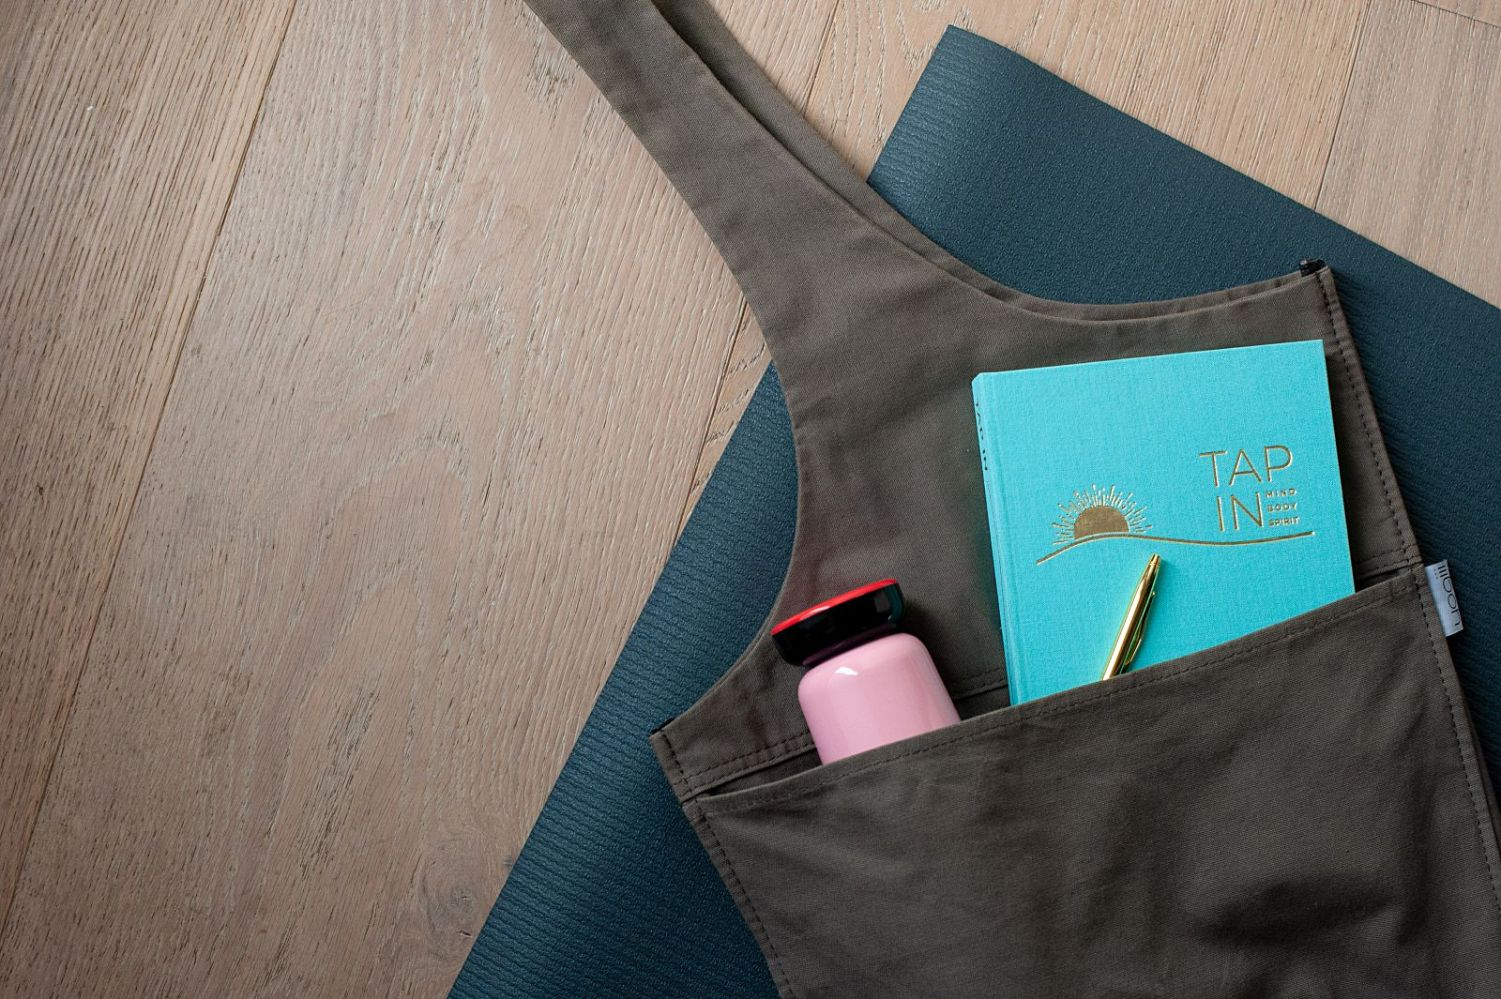 TAP IN wellness journal on a yoga mat with a water bottle.